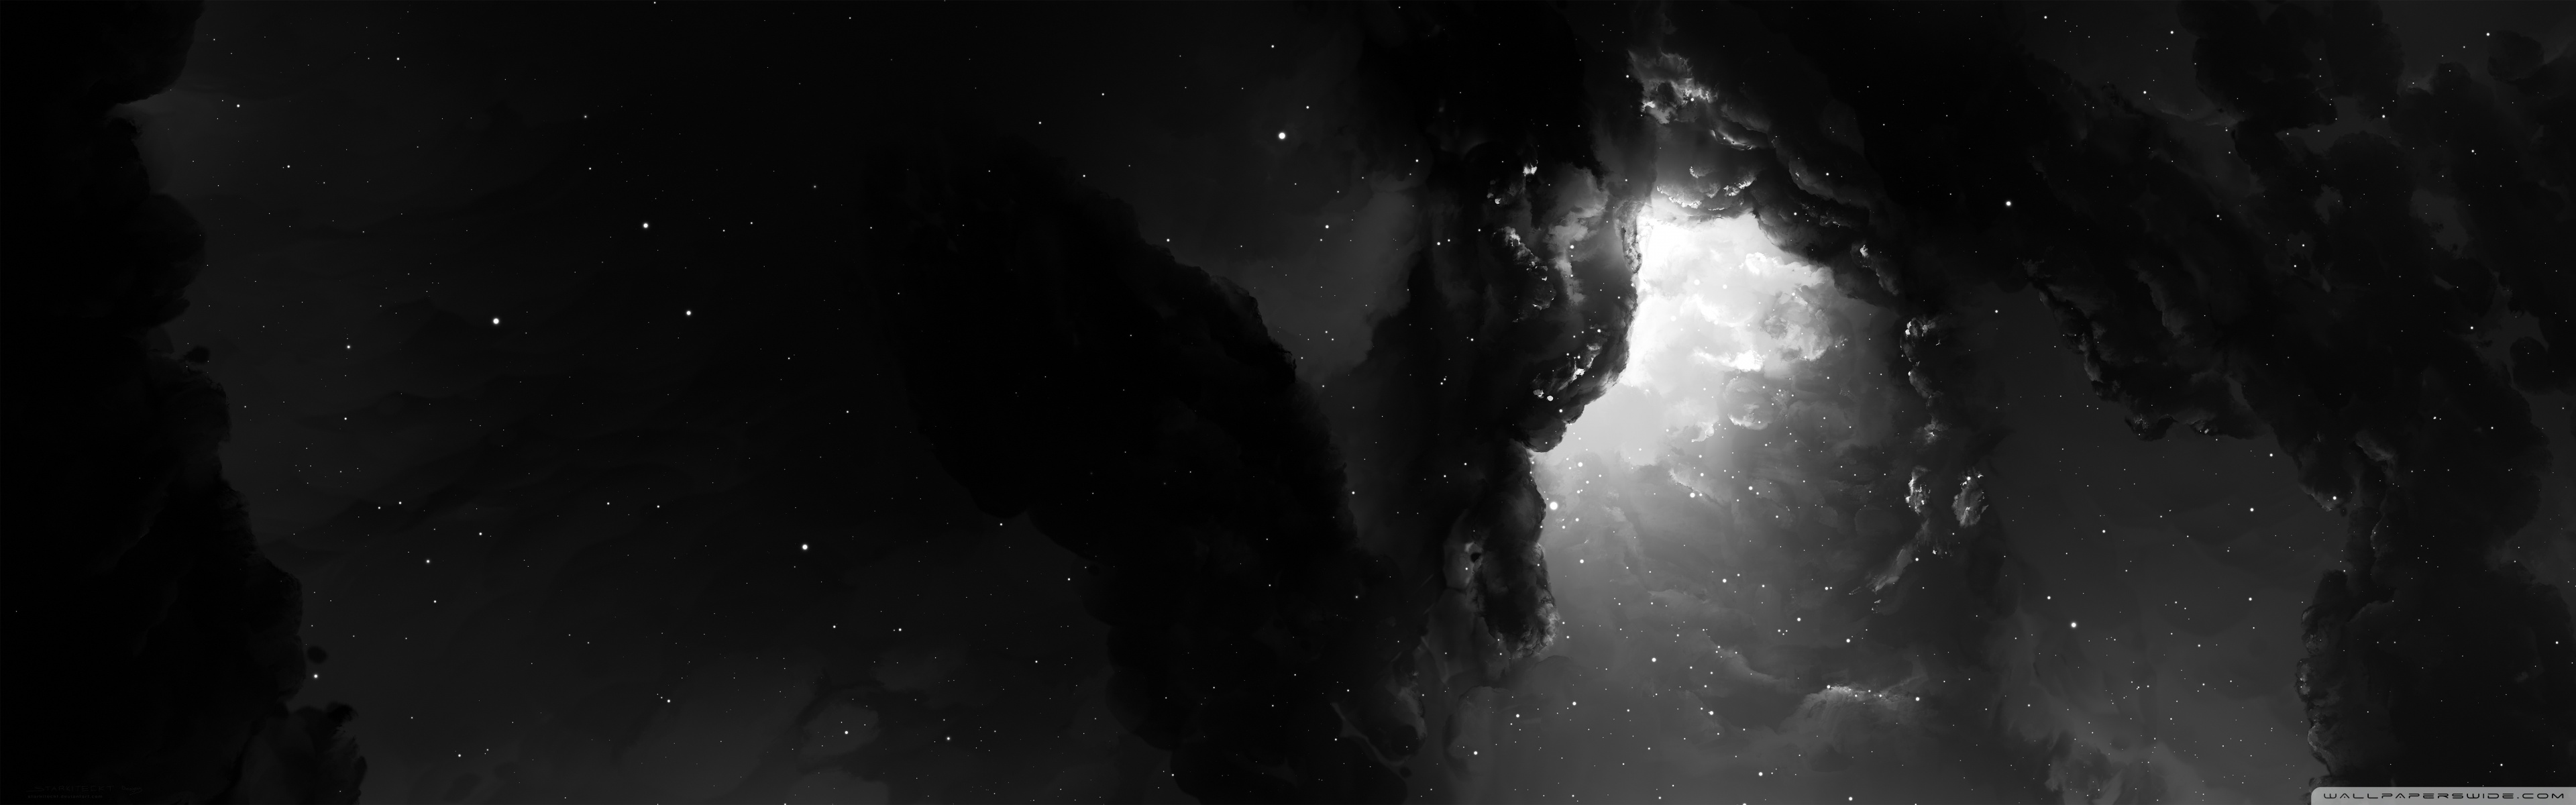 Dual Monitor Nebula Starkiteckt â 4k Hd Desktop Wallpaper